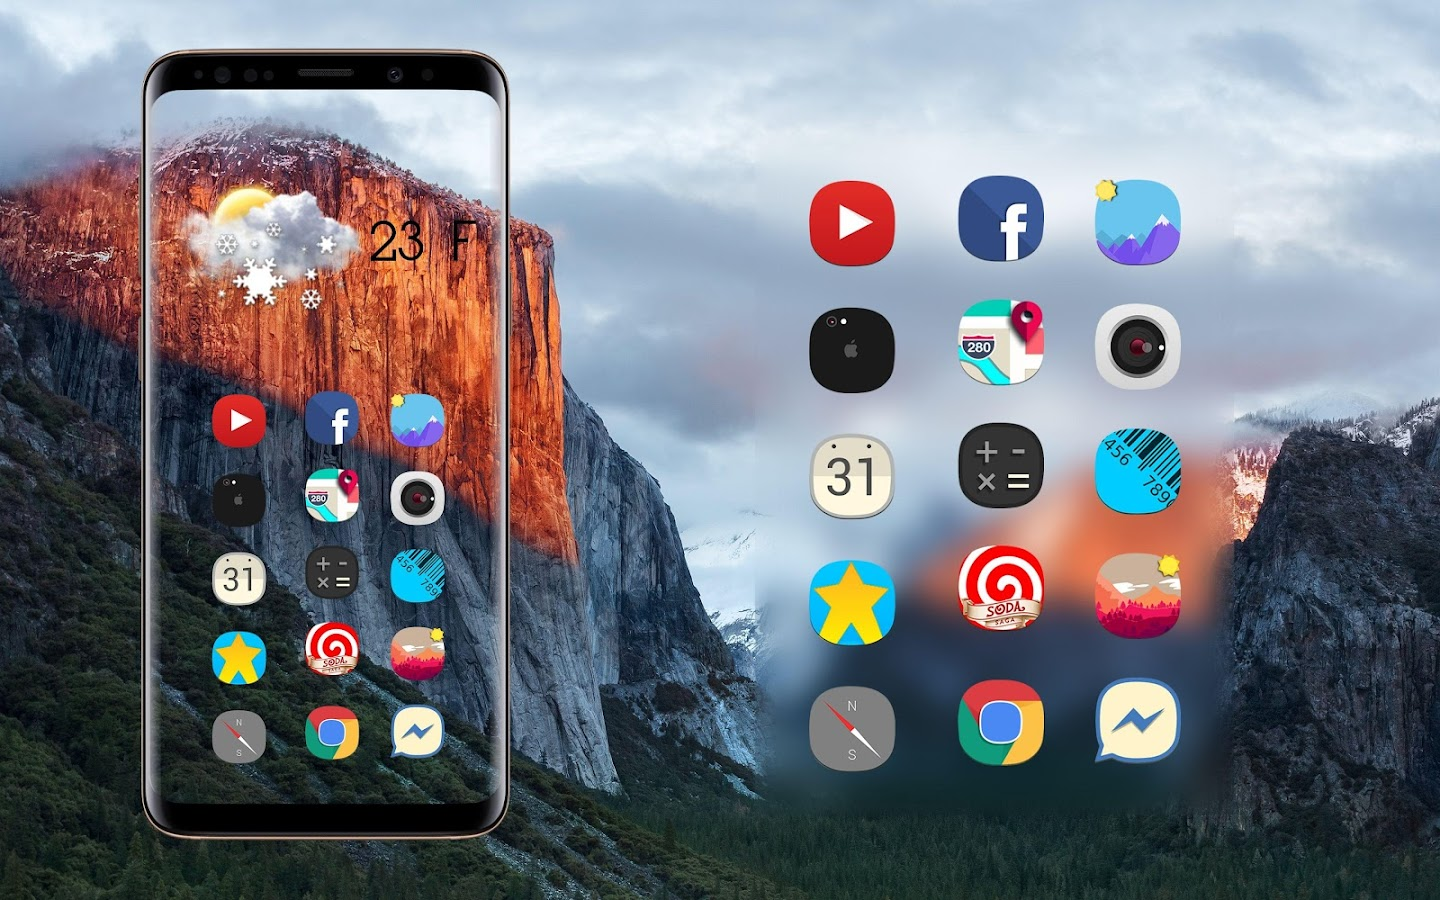 icon pack iOS 12 Concept - iPhone X Theme HD 6Icons Concept